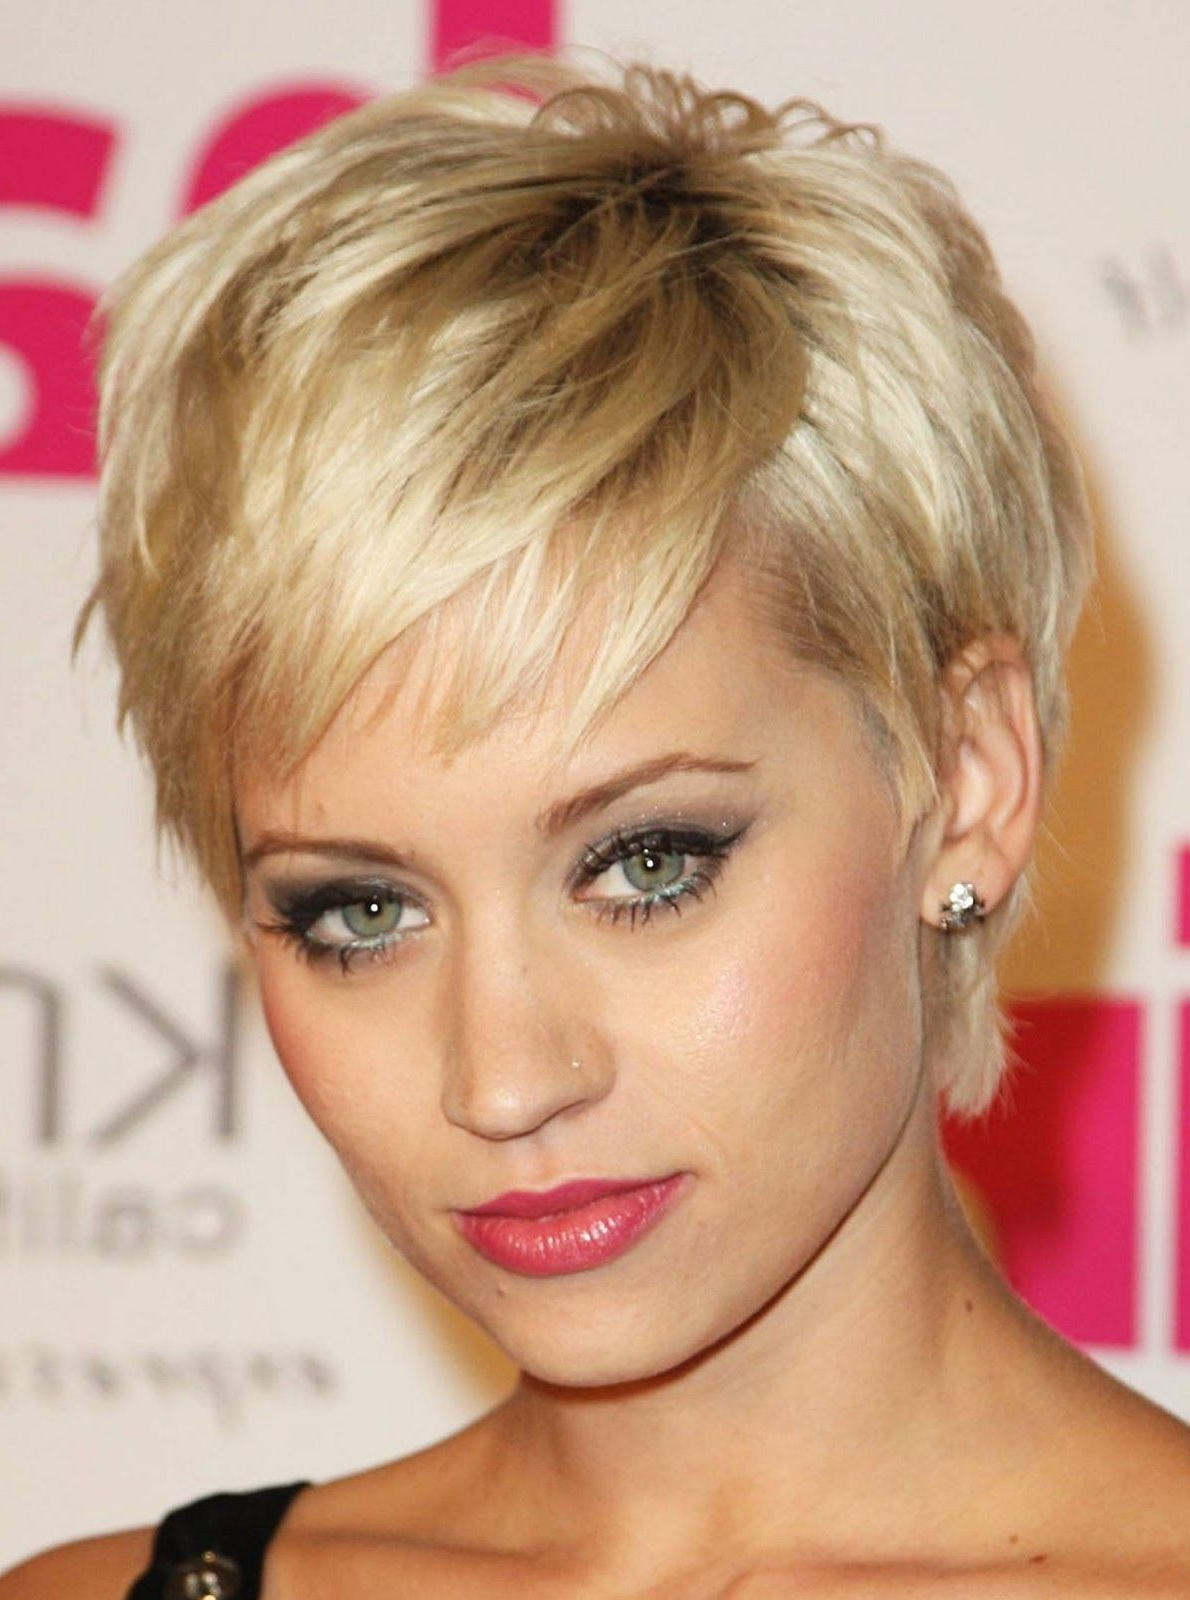 Easy Maintenance Haircuts For Women | Short Hairstyles For Women Pertaining To Low Maintenance Short Haircuts For Round Faces (View 20 of 25)